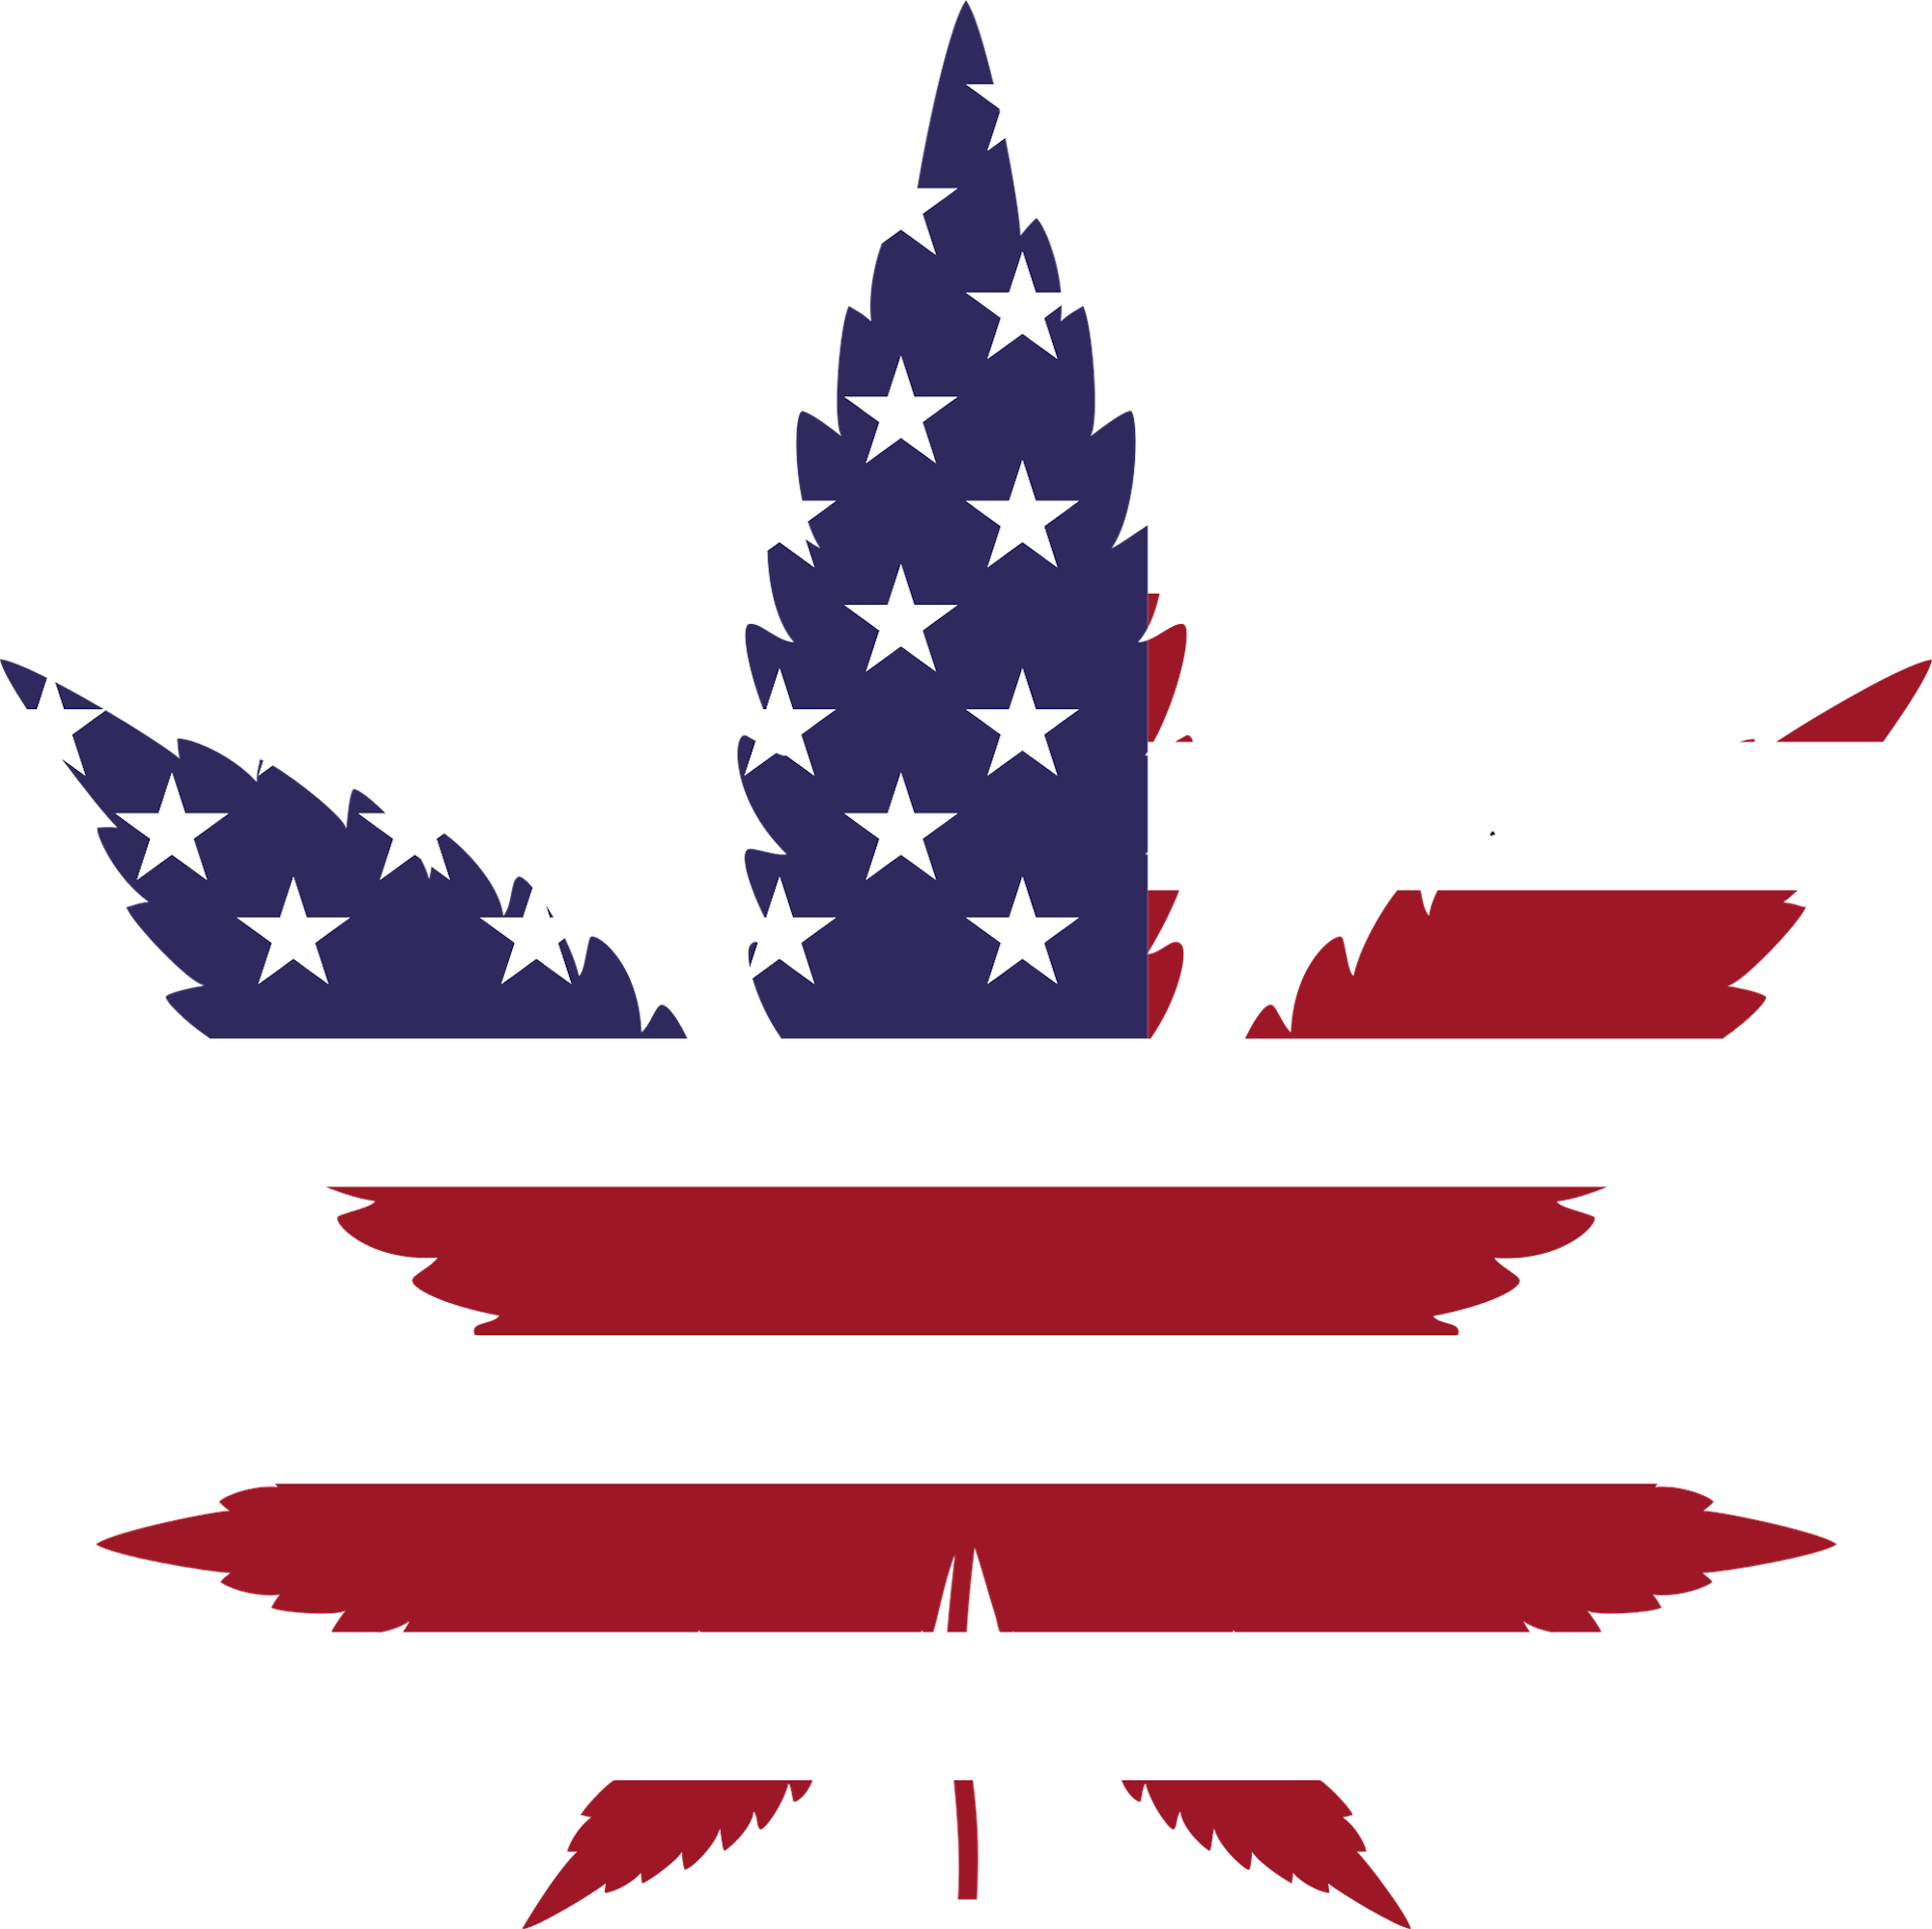 If Trump Keeps His Word STATES Act Could End Cannabis Prohibition Across U.S.